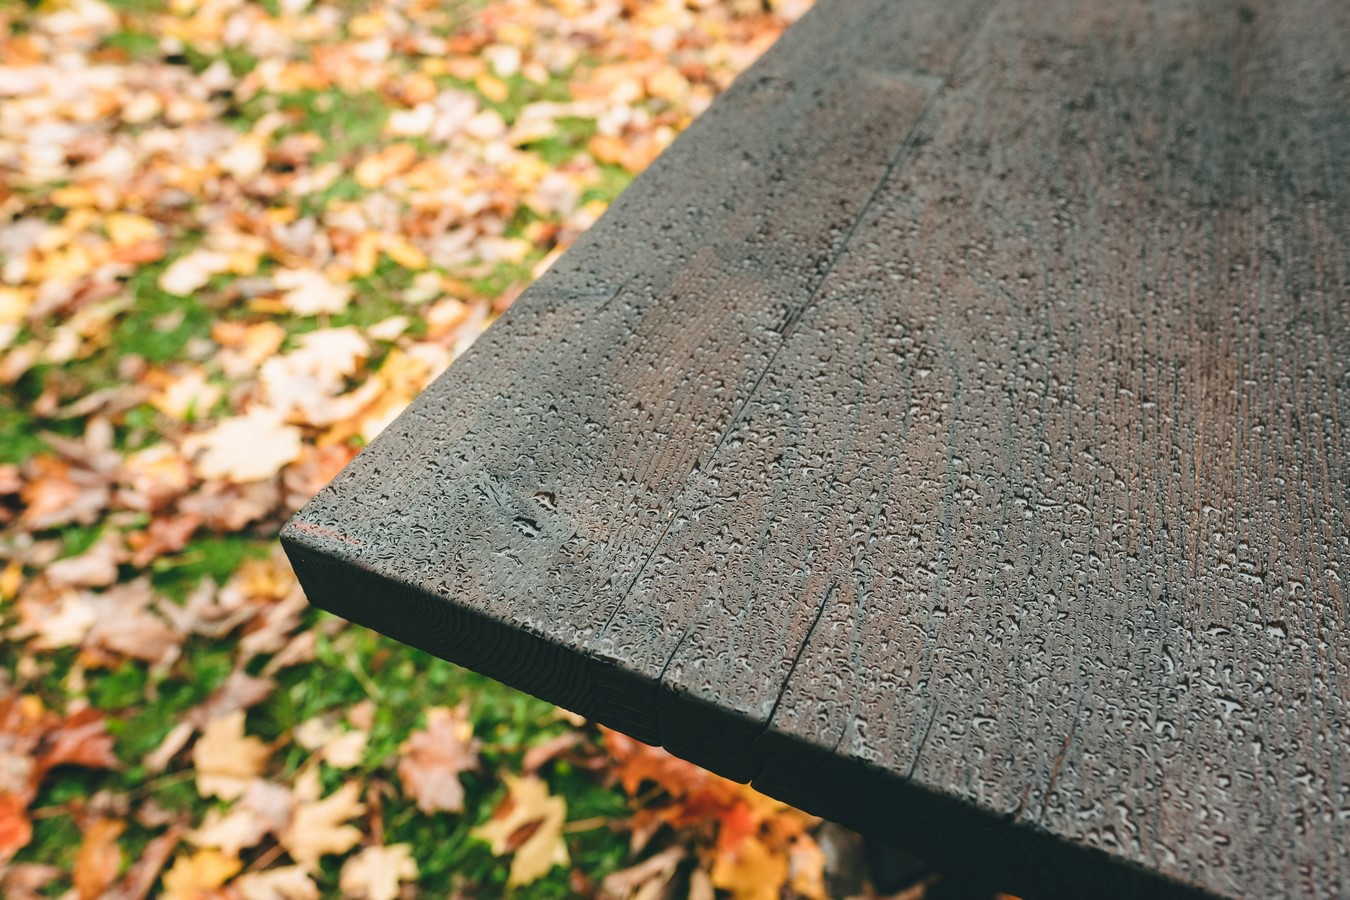 10 Things you did not know about shou sugi ban - Sheet4